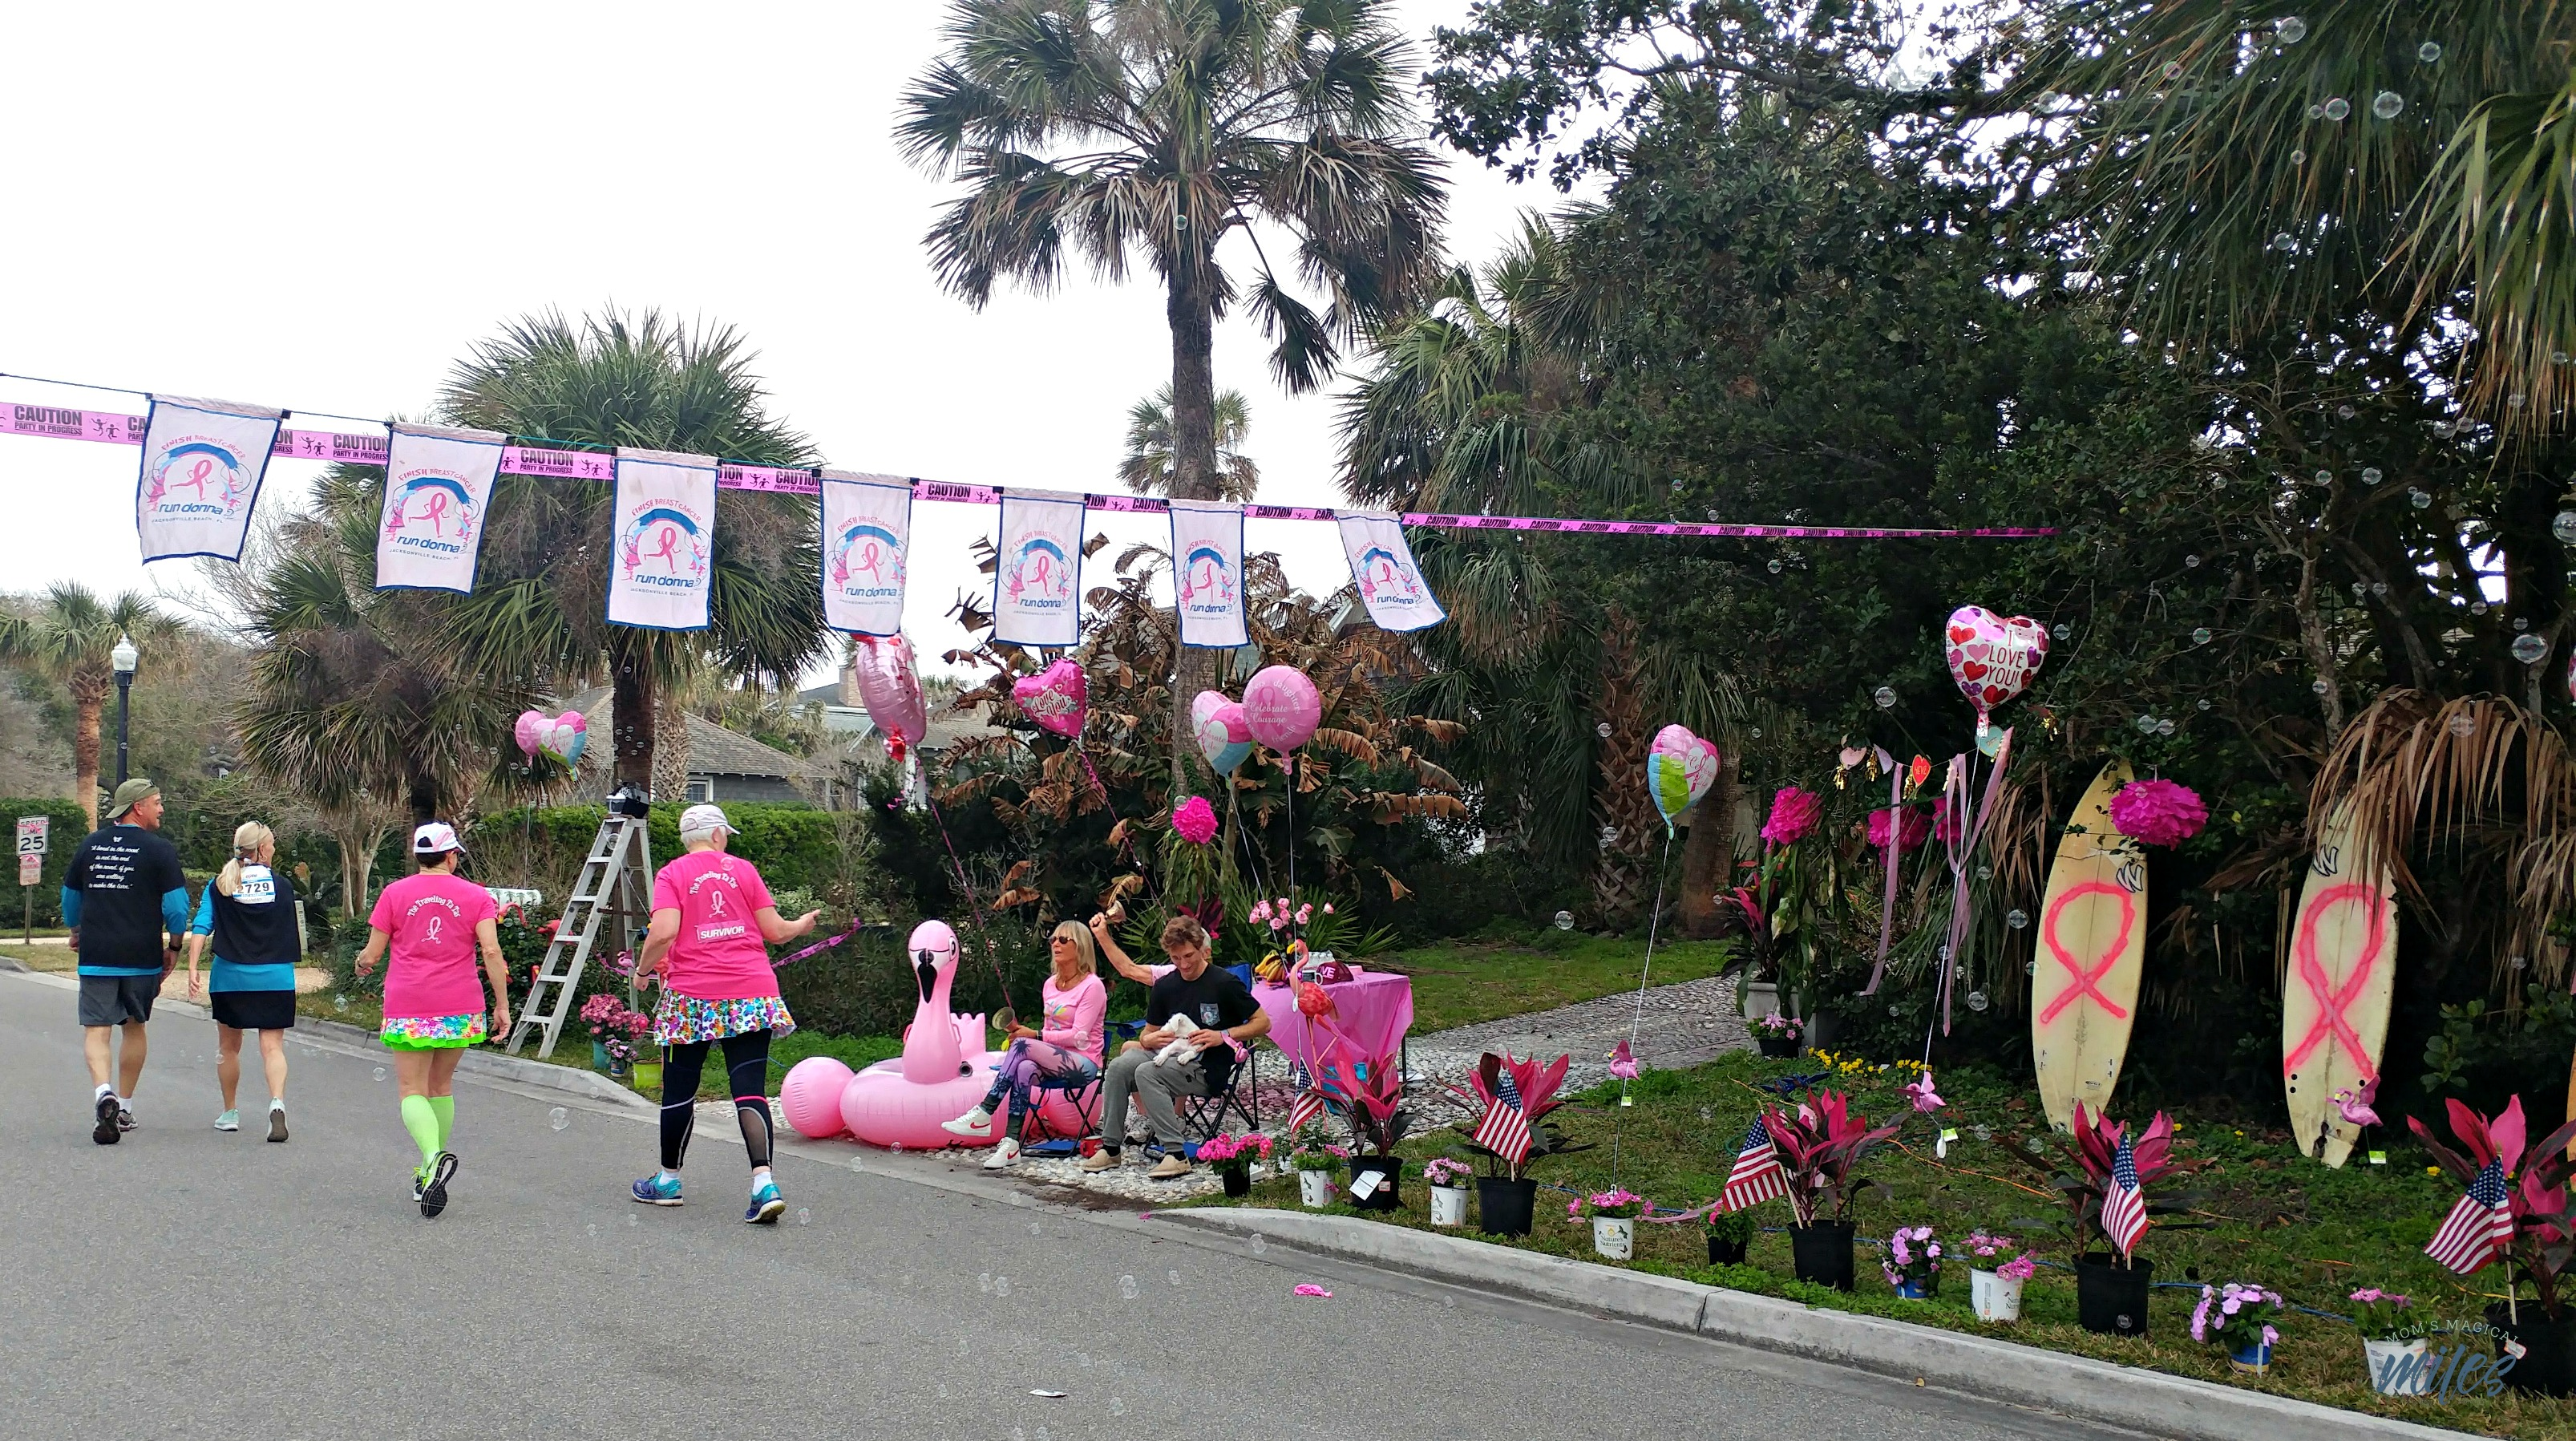 You'll find fun decorations along the Donna Half course in Jacksonville, FL!